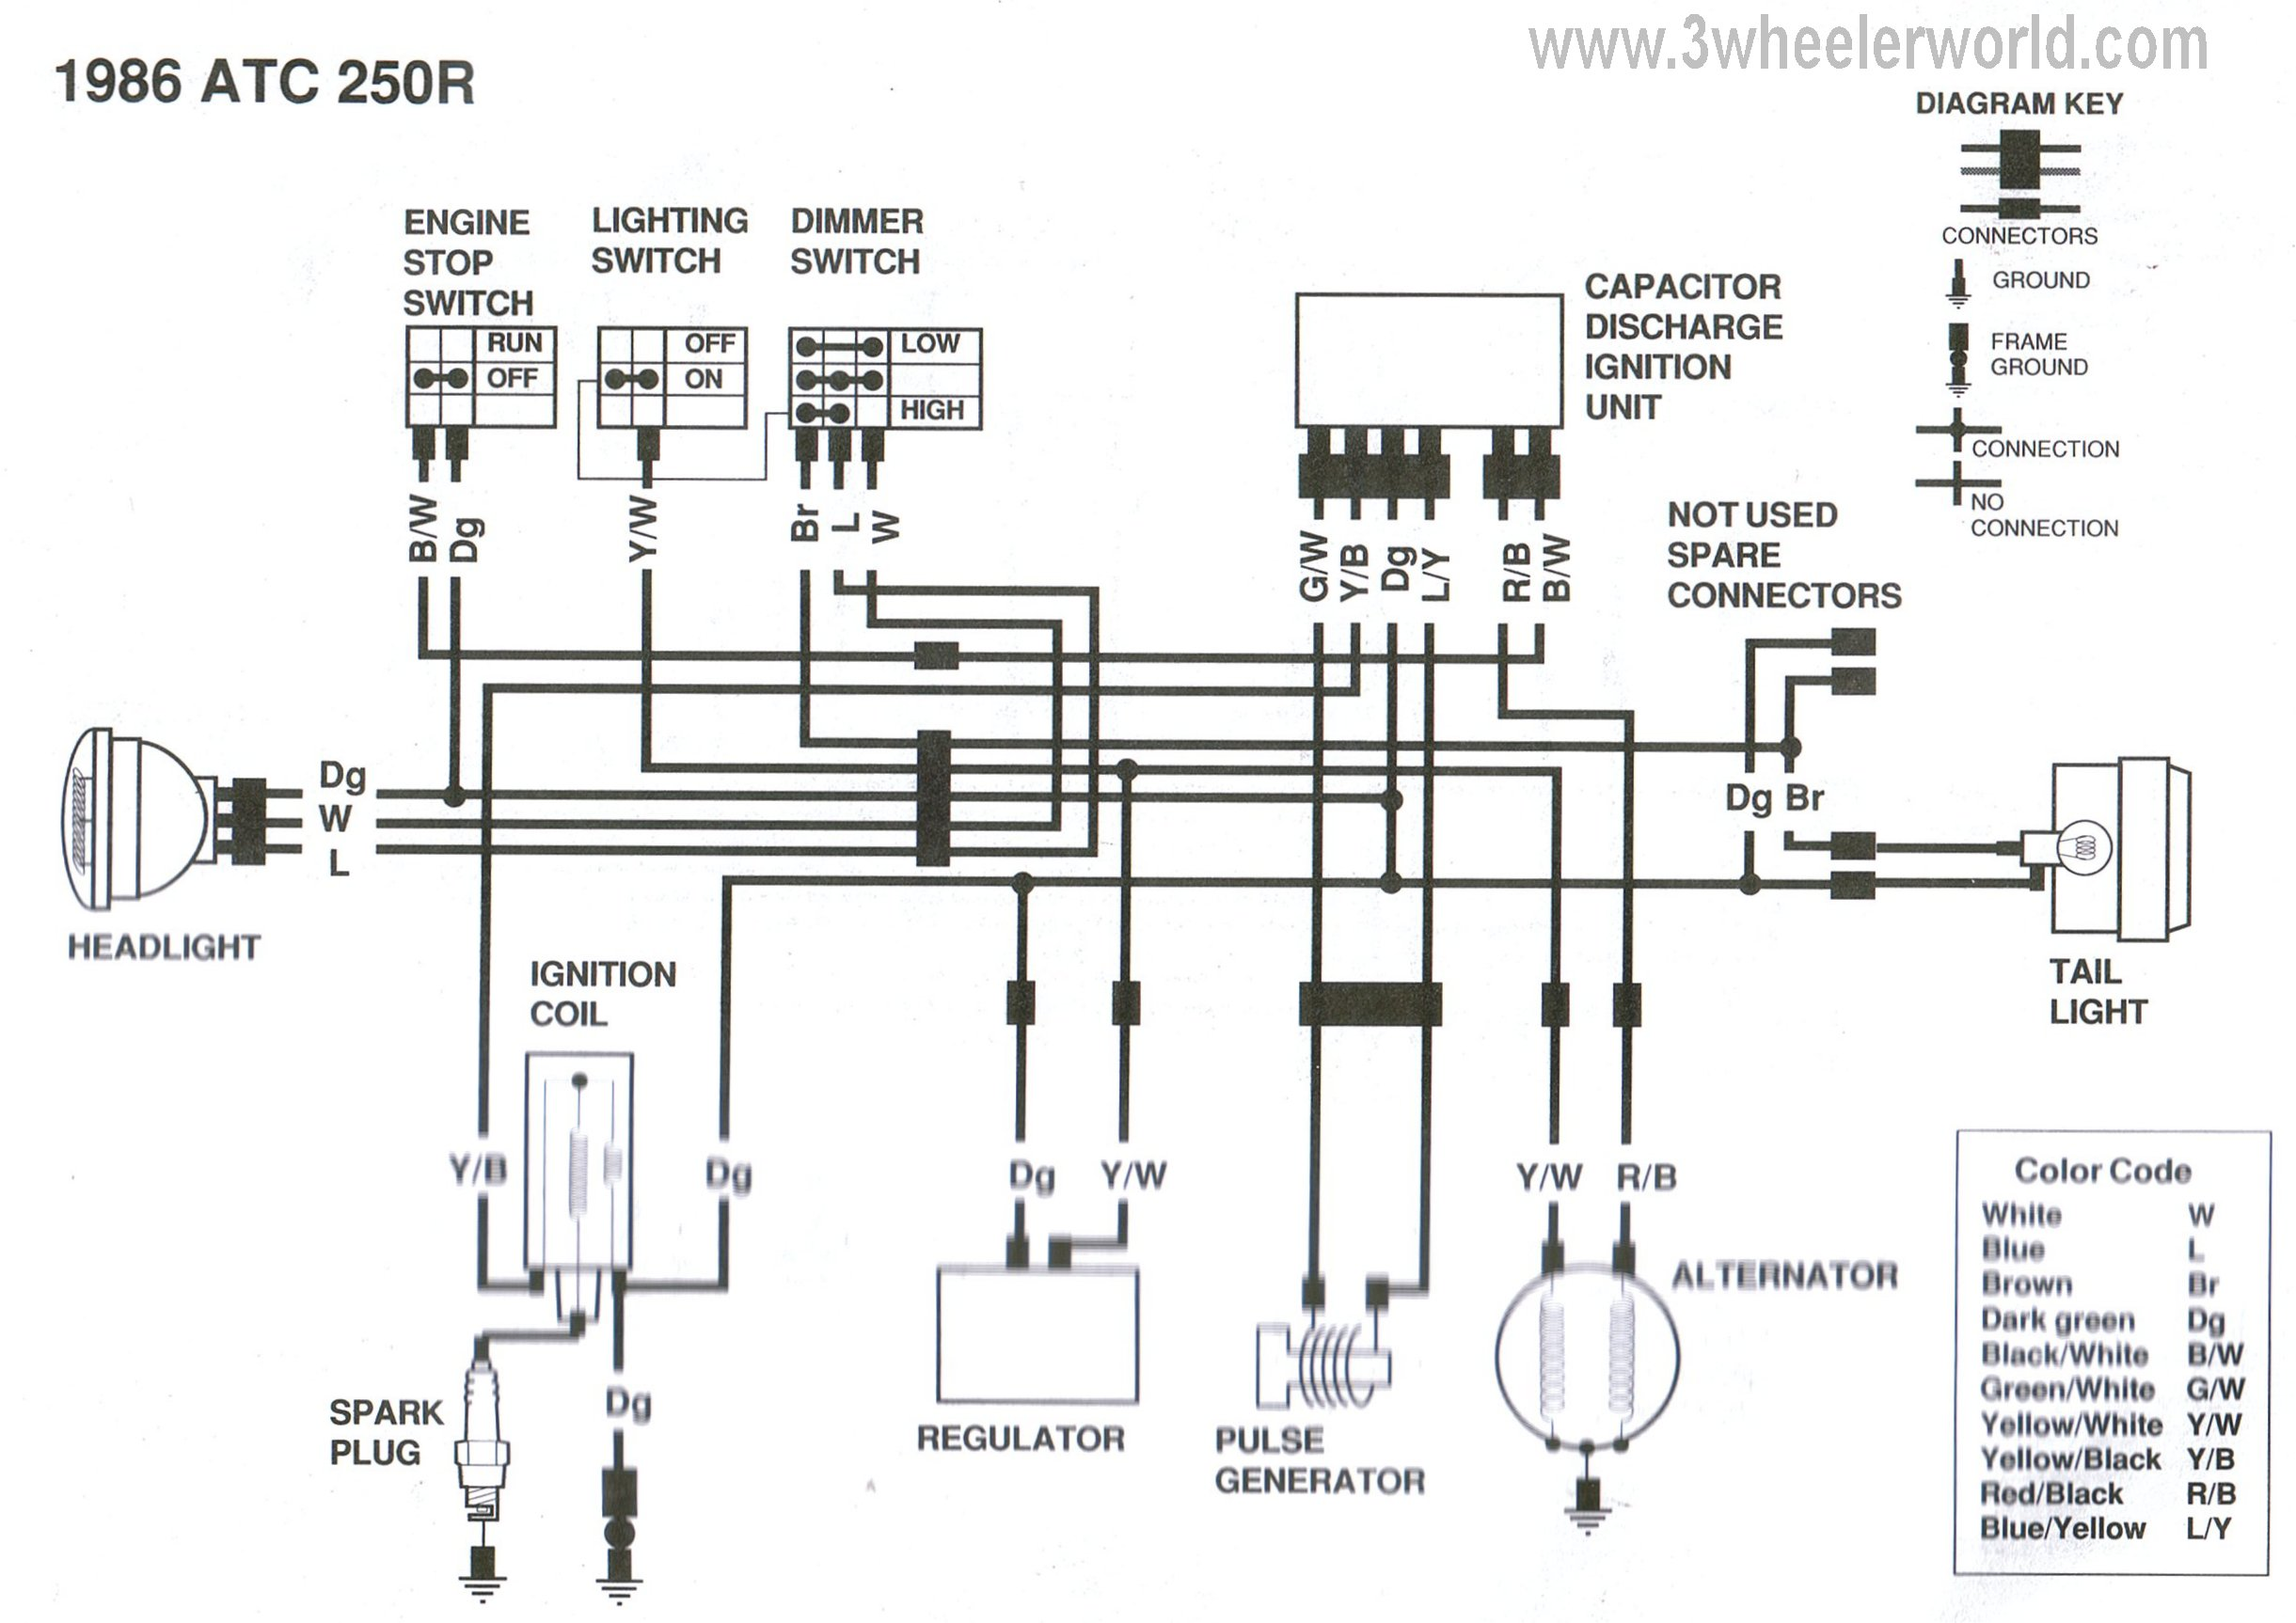 4 wheeler wiring diagram for carburetor 4 wheeler